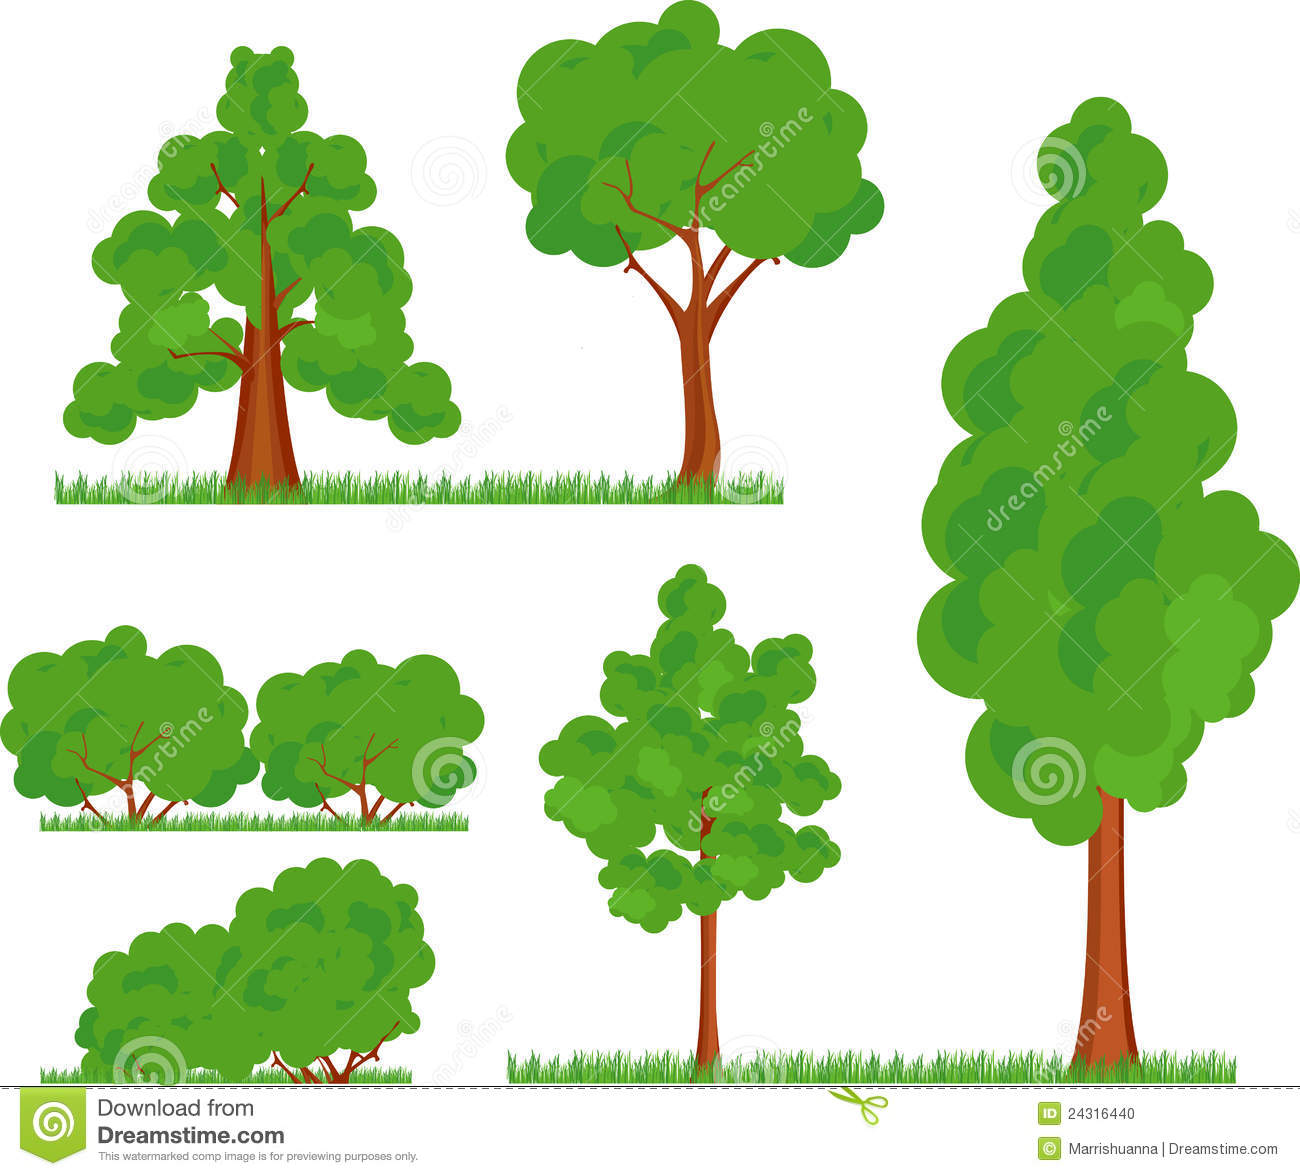 Tree and bush clipart.